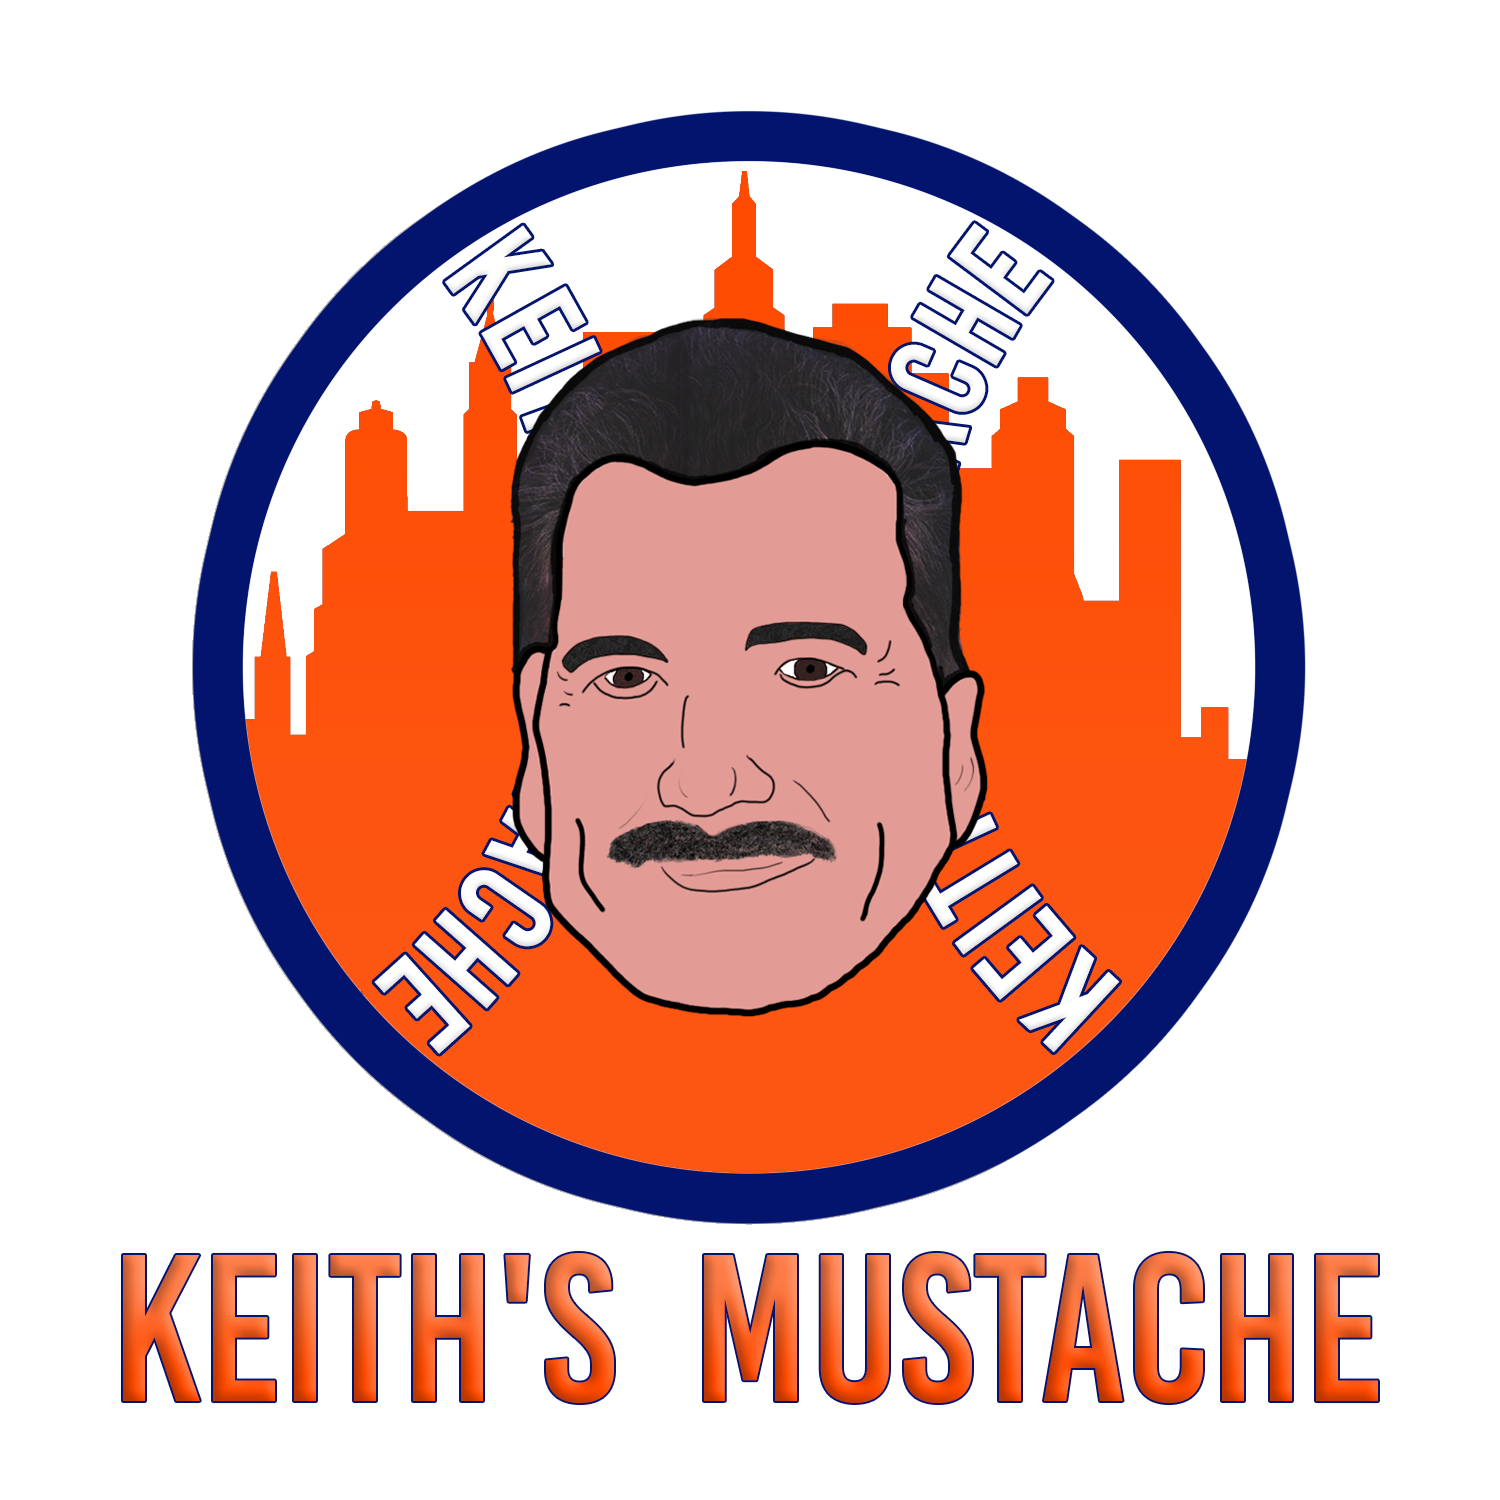 Keith's Mustache